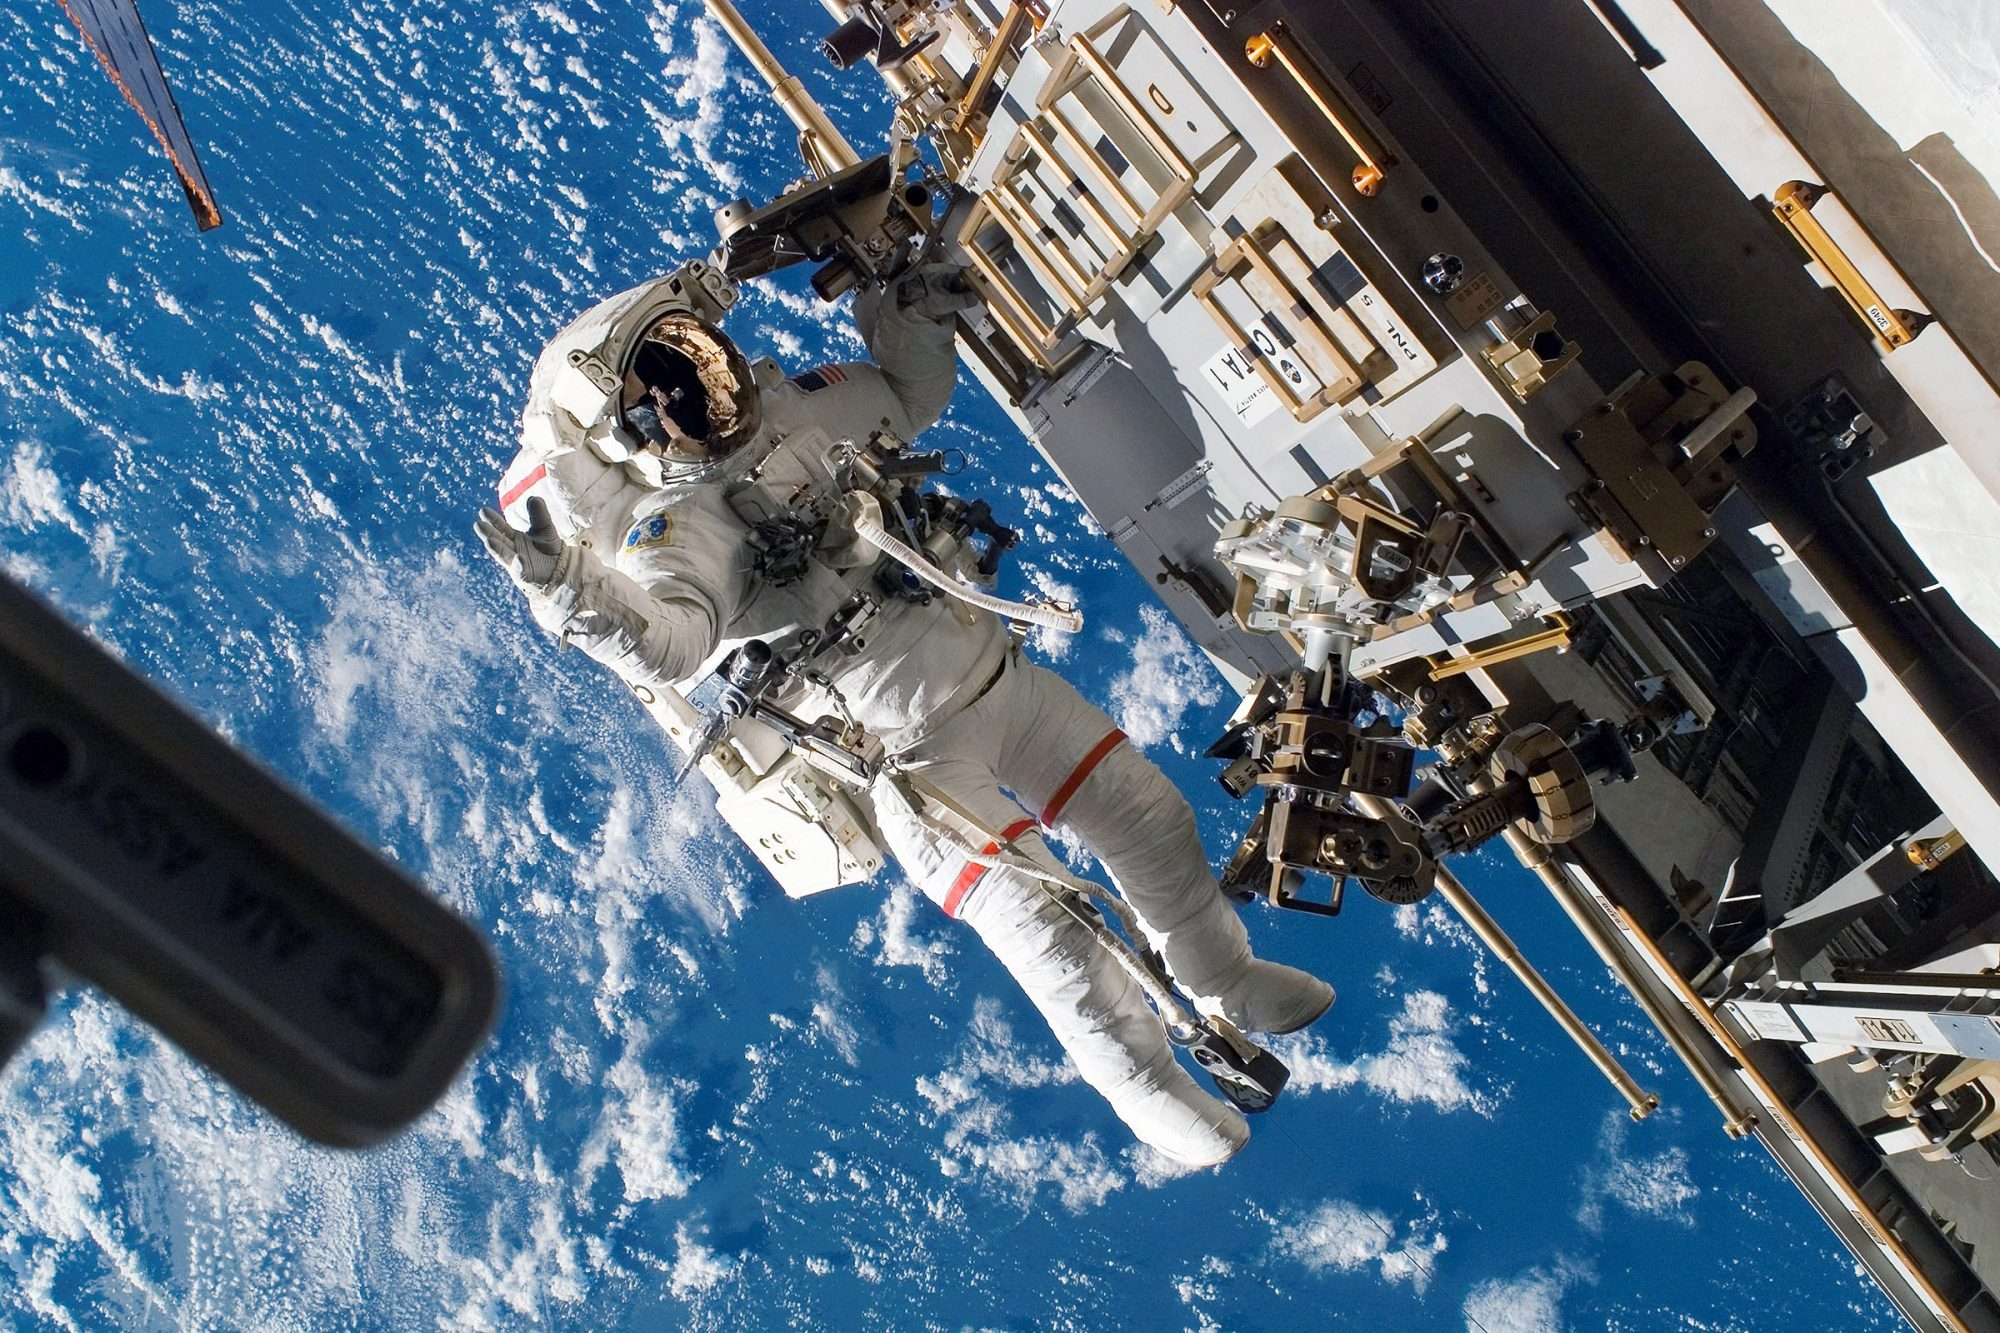 In this handout photo provided by NASA, Astronaut Rick Mastracchio, STS-118 mission specialist, participates in the mission's third planned session of extravehicular activity (EVA) as construction and maintenance continue on the International Space Station August 15, 2007 in Space